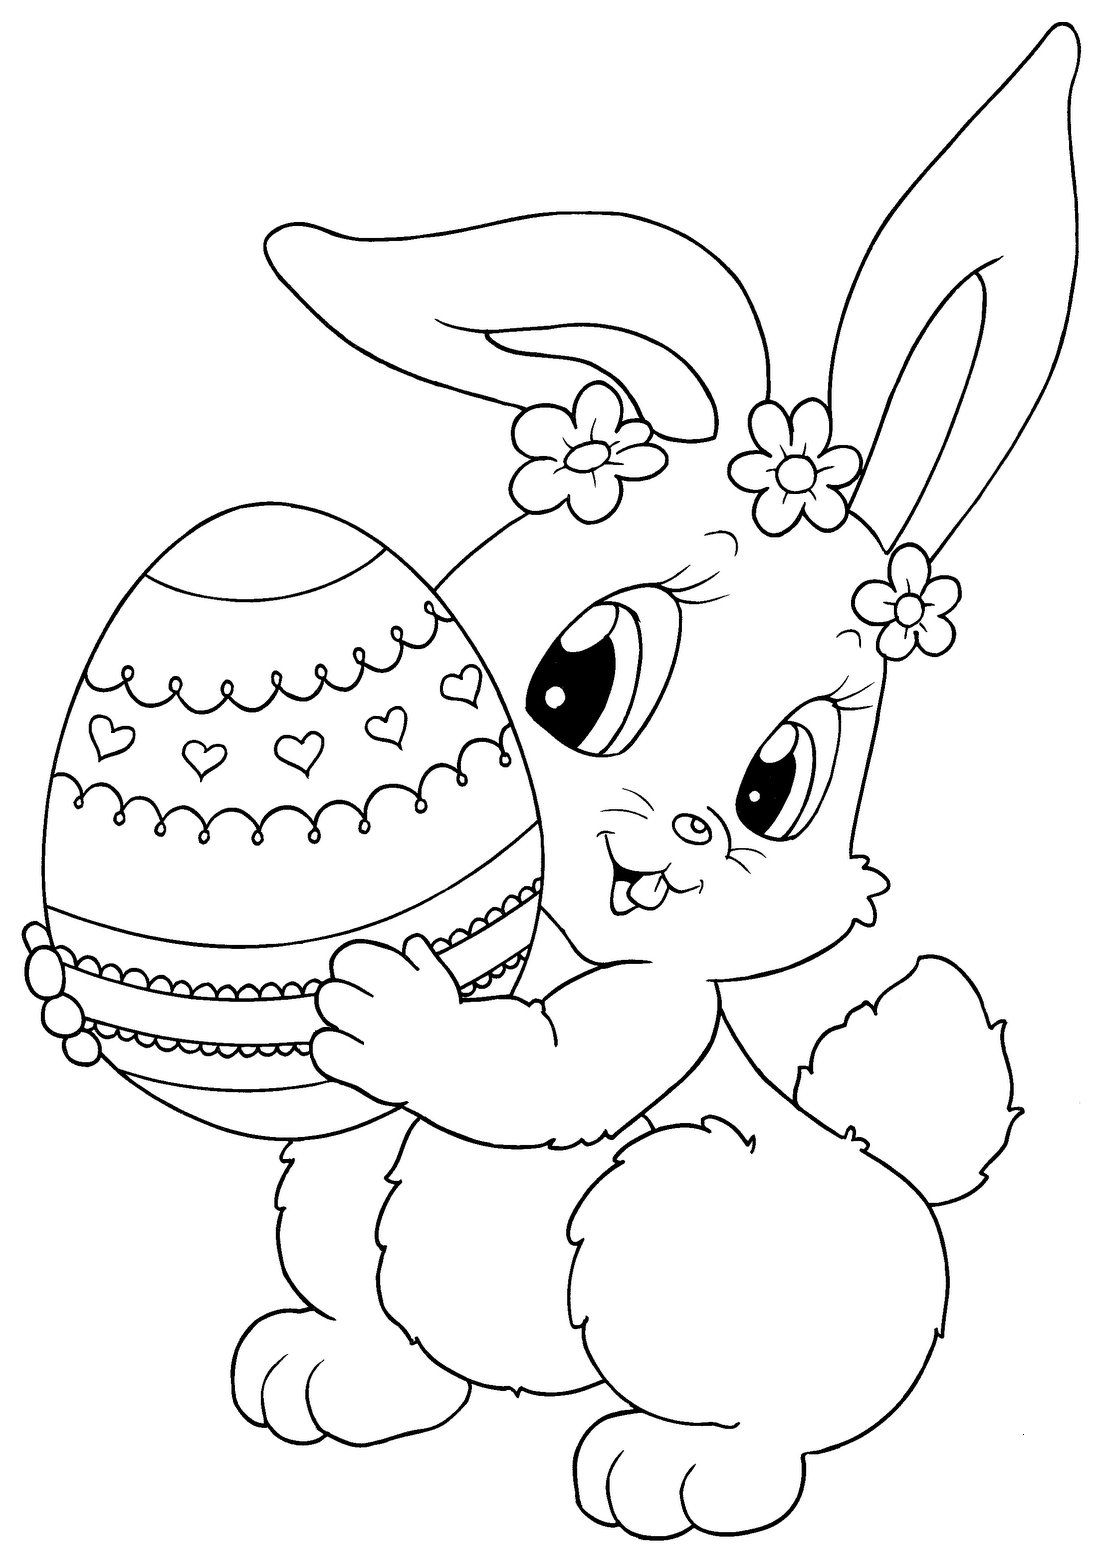 Top 15 Free Printable Easter Bunny Coloring Pages Line Gallery Of Delighted Bunny Print Out Coloring Pages Easter for Kids Crazy Printable